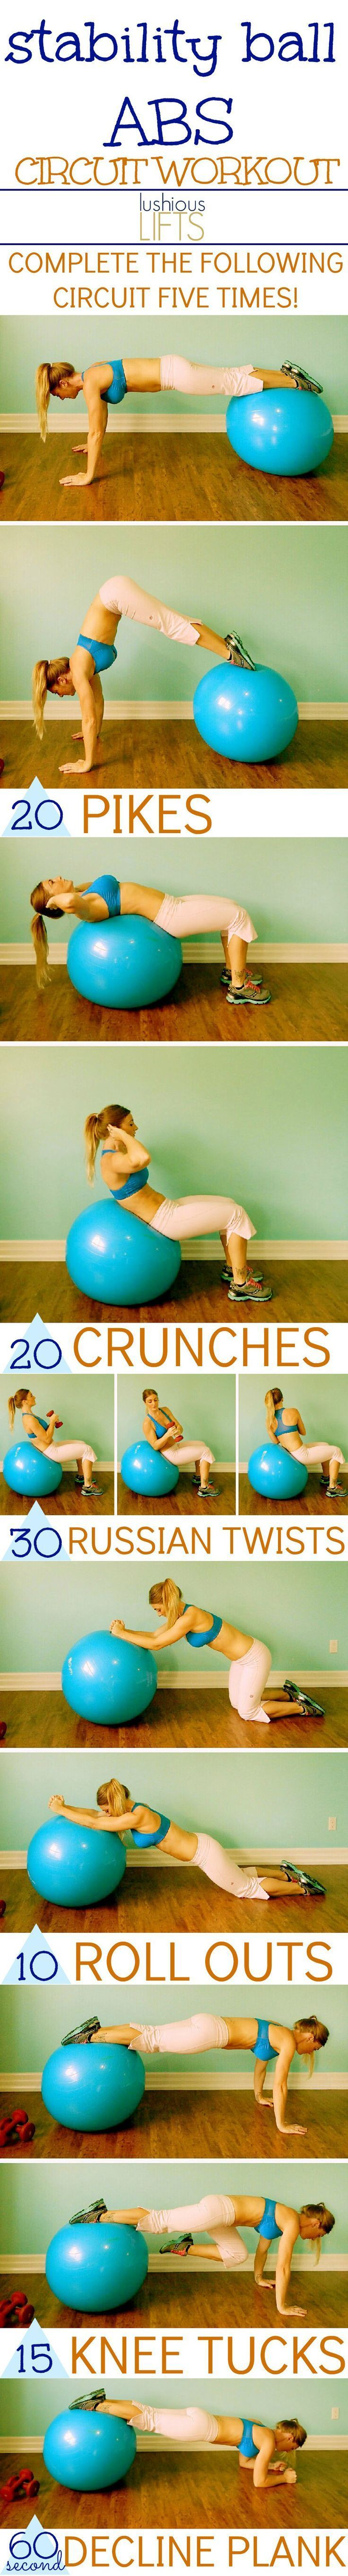 Stability Ball Abdominal Circuit Workout http://lushiouslifts.com/stability-ball-abs-circuit/ #Fitness #Workout Pin/Via -